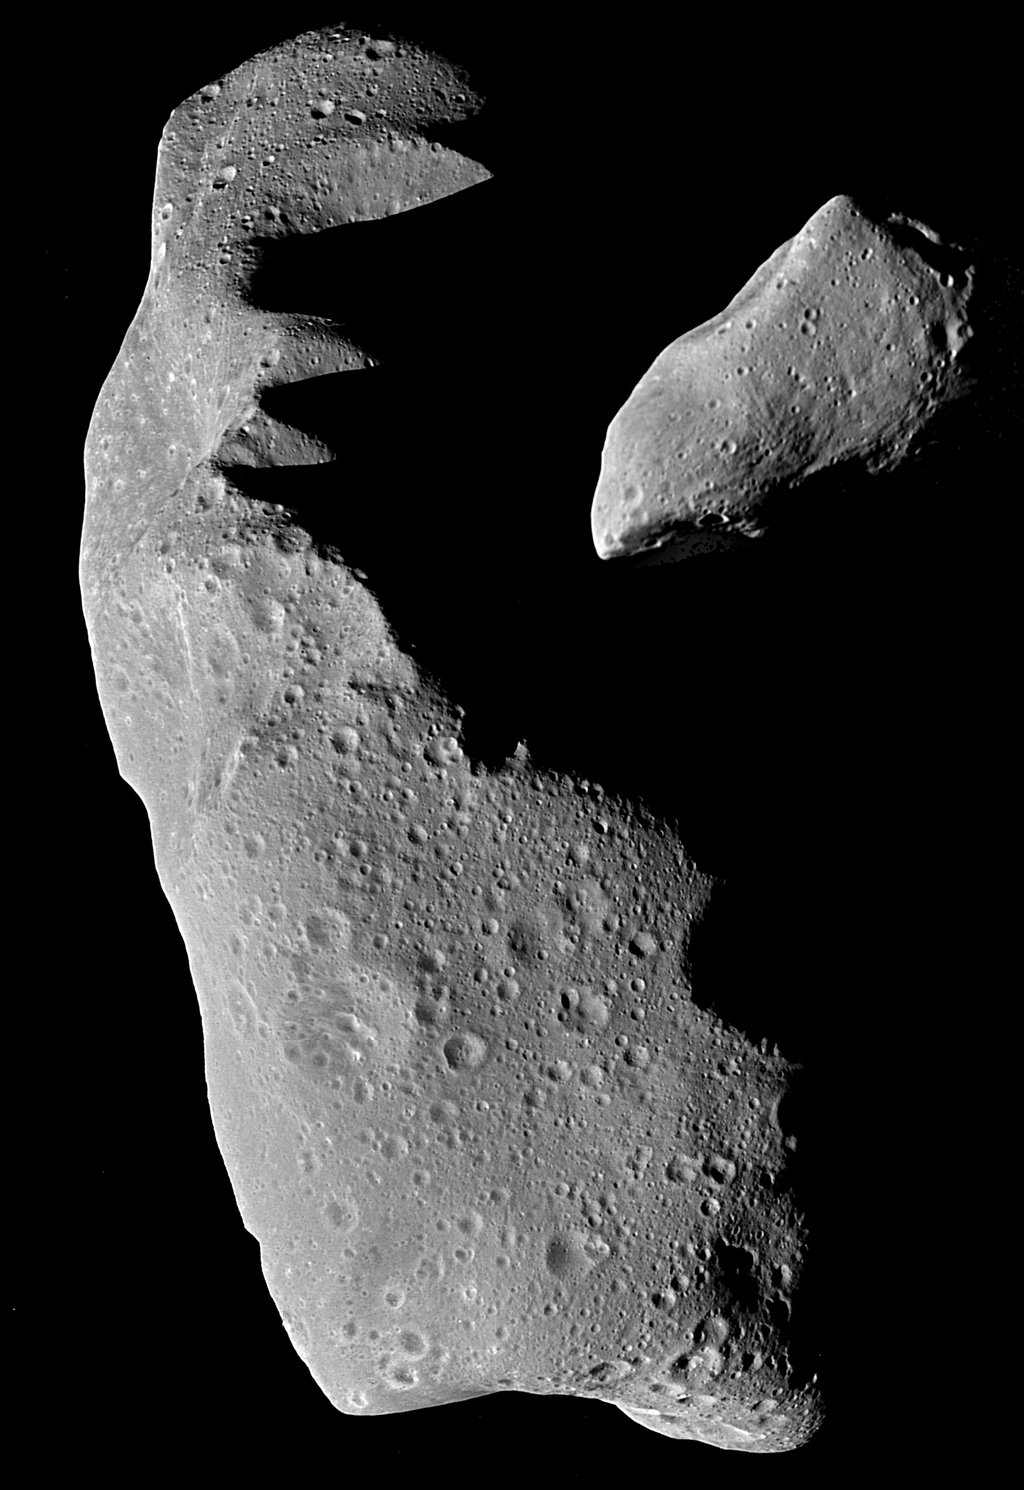 This picture shows the asteroids Ida (left) and Gaspra (right) to the same scale. These images were taken by NASA's Galileo spacecraft while enroute to Jupiter. Gaspra was imaged on October 29, 1991 at a range of 3,300 miles (5,300 km).